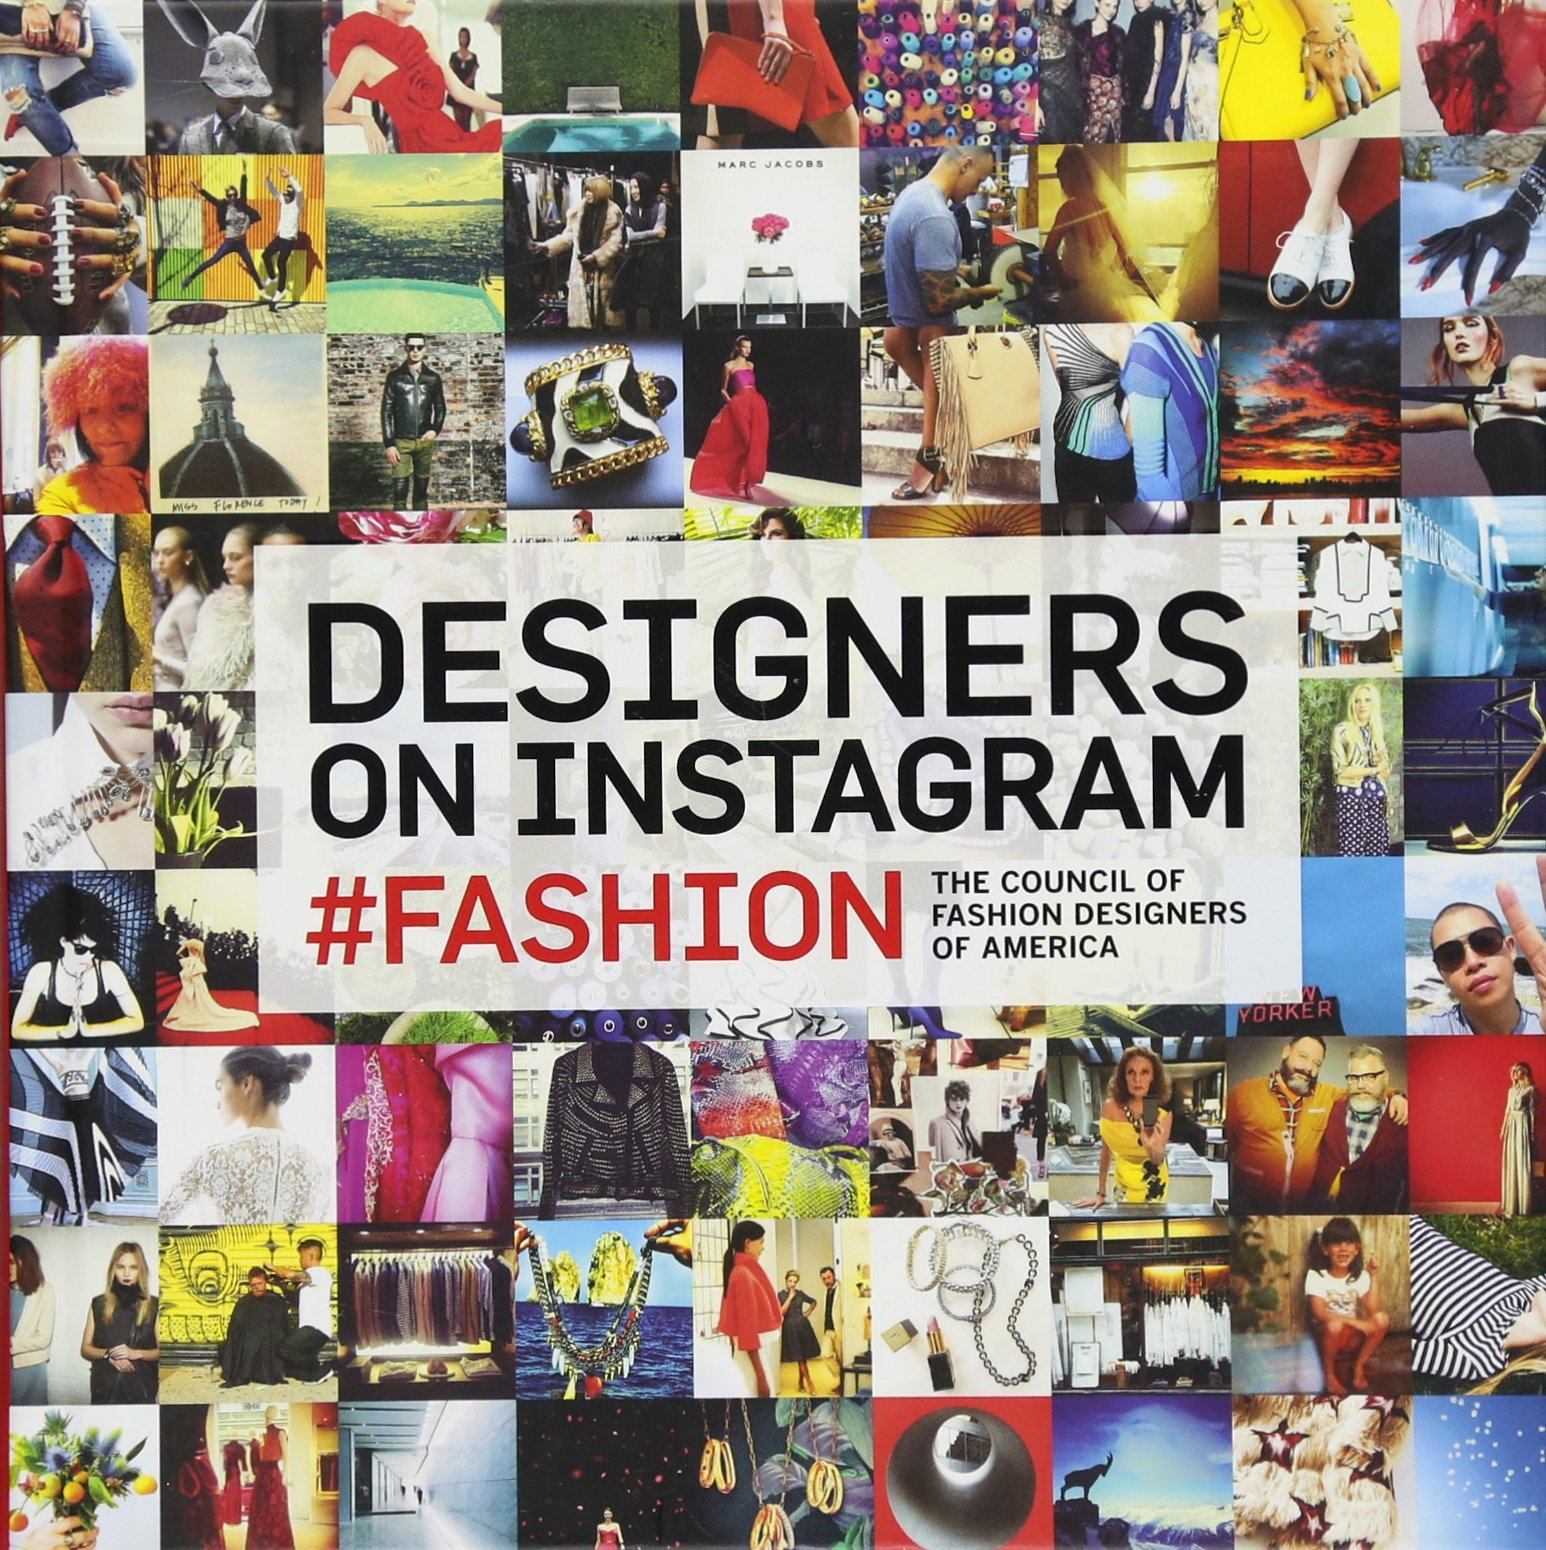 Designers on Instagram fashion Council of Fashion Designers of